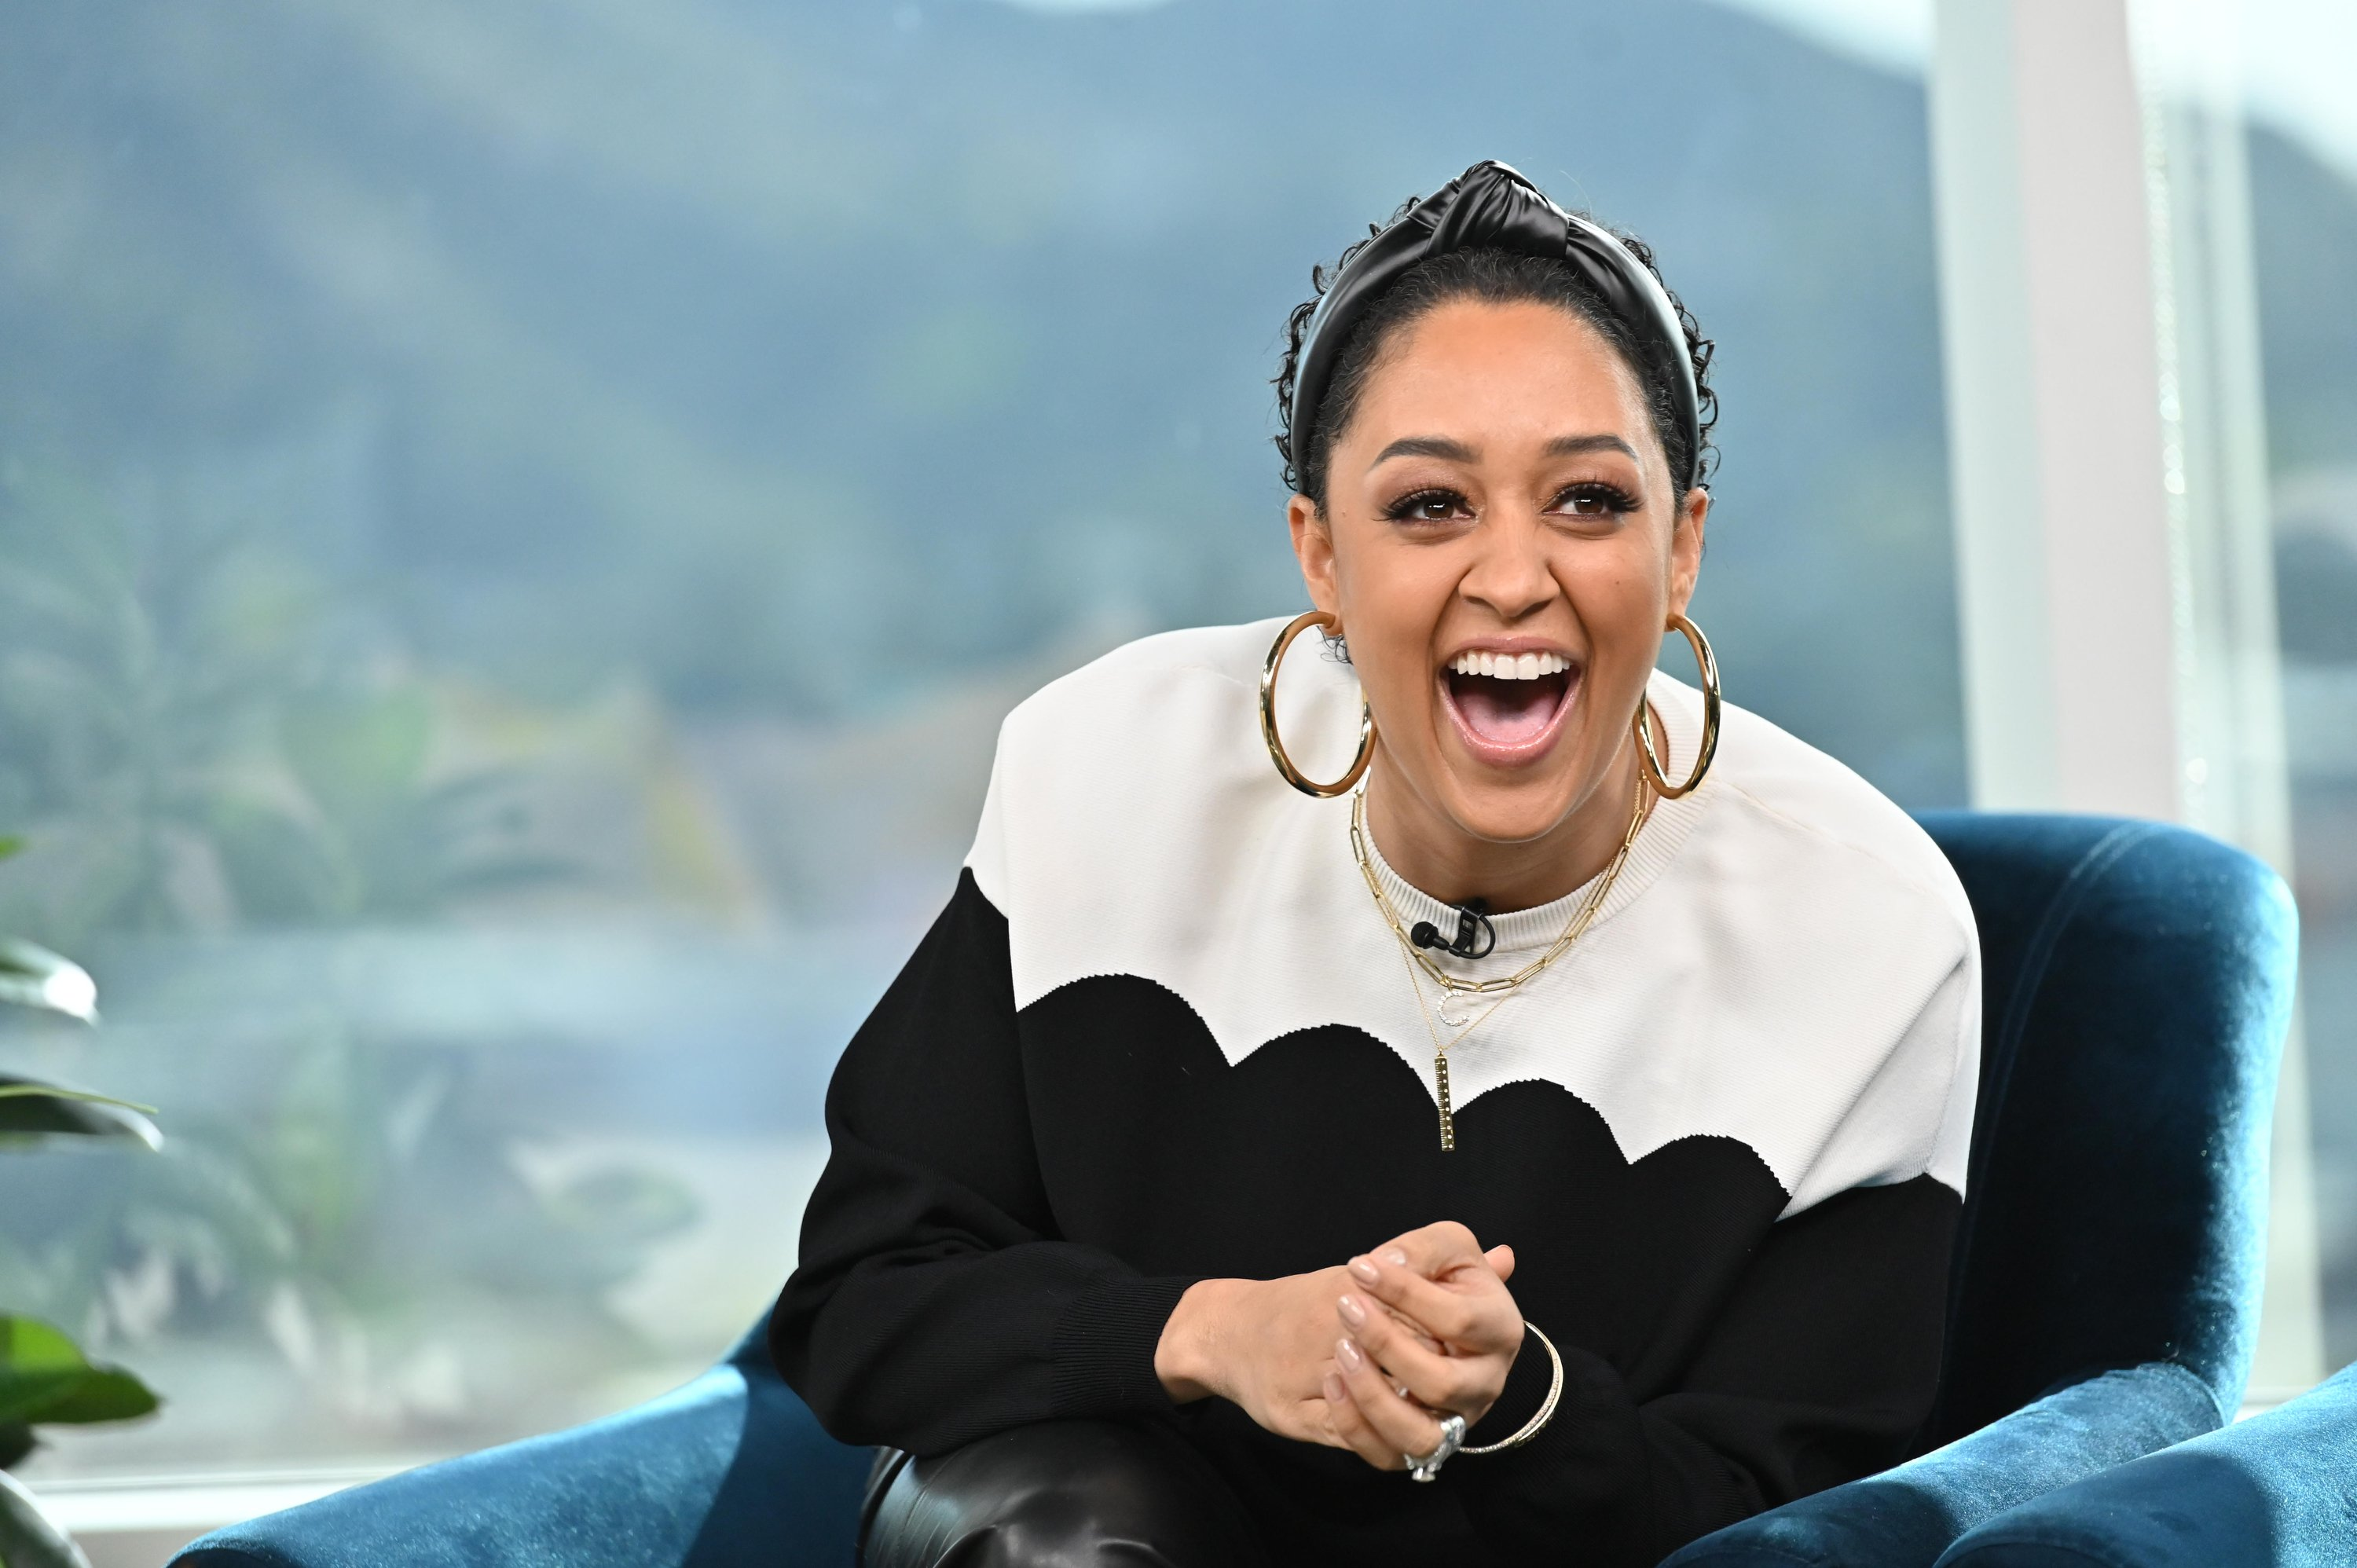 """Tia Mowry-Hardrict on the set of E!'s """"Daily Pop"""" on February 27, 2020 